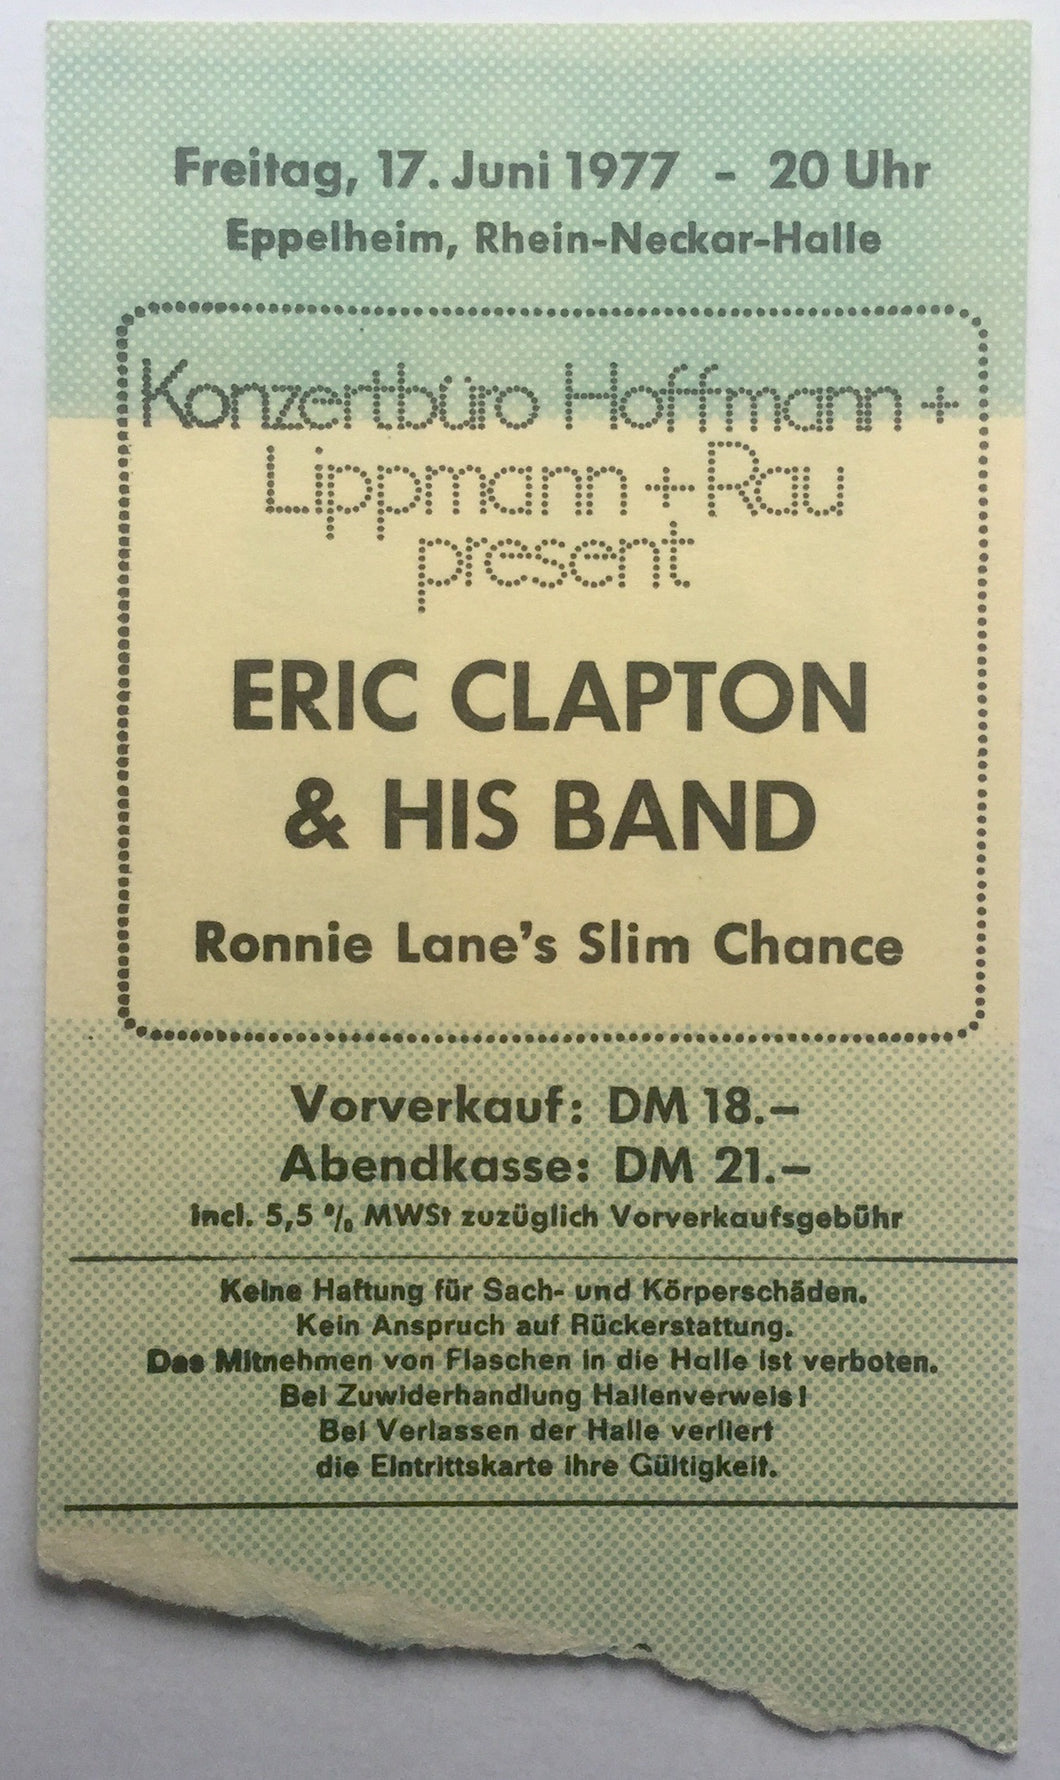 Eric Clapton Original Used Concert Ticket Rhein Neckar Halle Eppelheim 17th Jun 1977